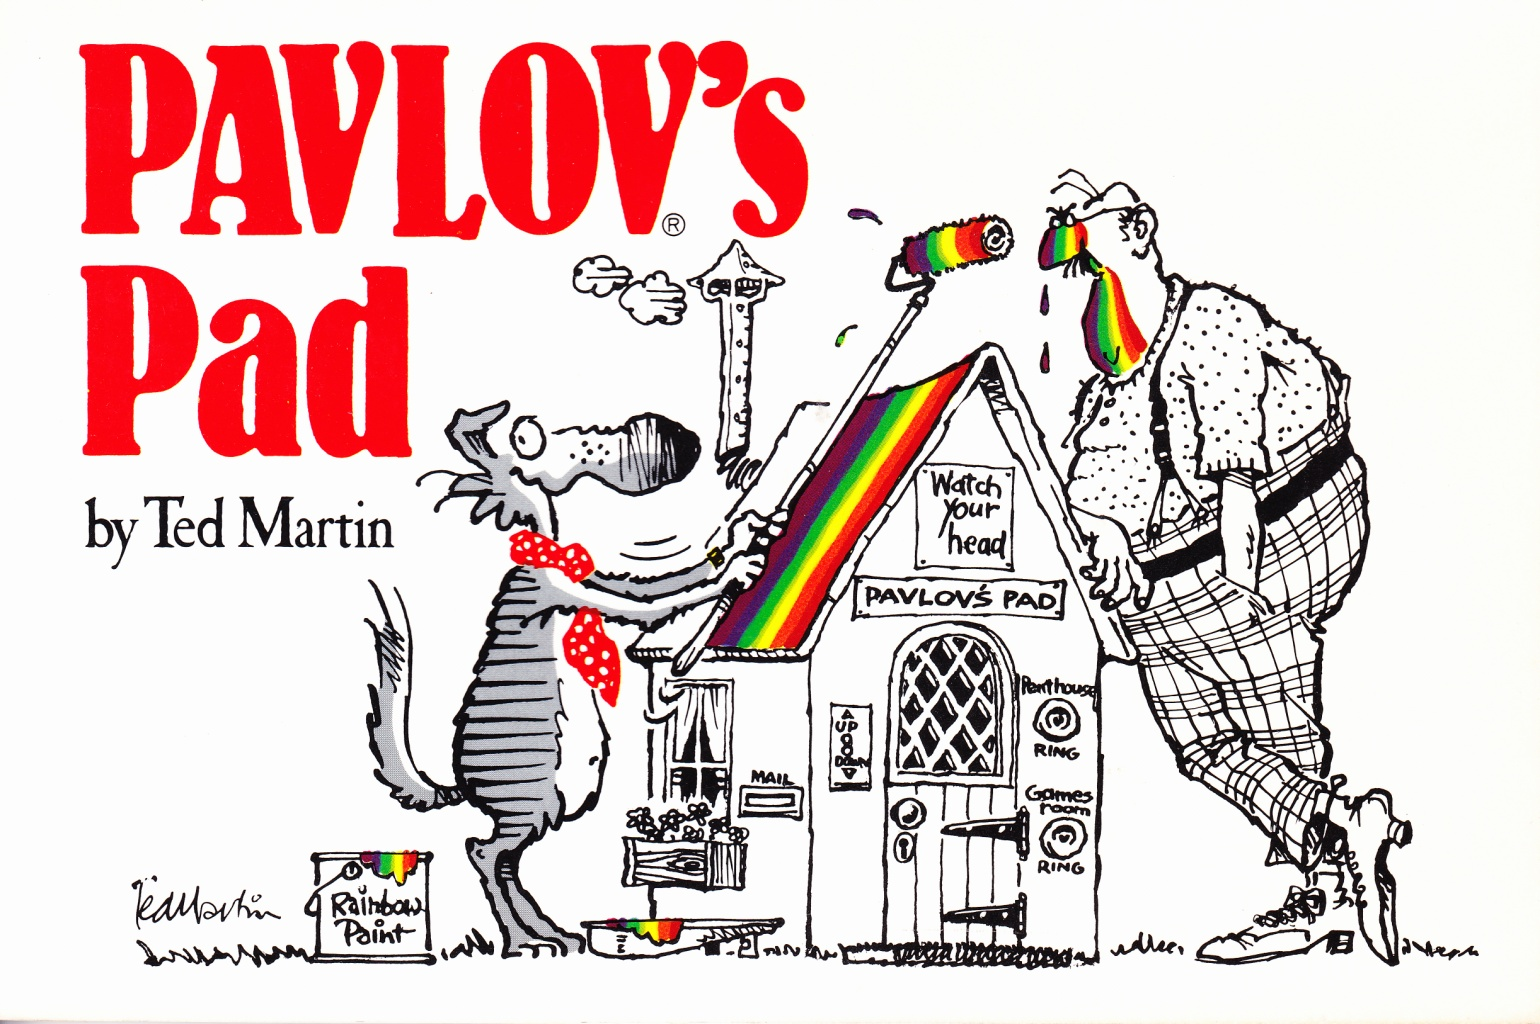 C:\Users\Robert\Documents\CANADIAN CARTOONING ILLUSTRATION and ANIMATION\IMAGE CARTOON P\PAVLOV Pavlov's Pad, 1982..jpg